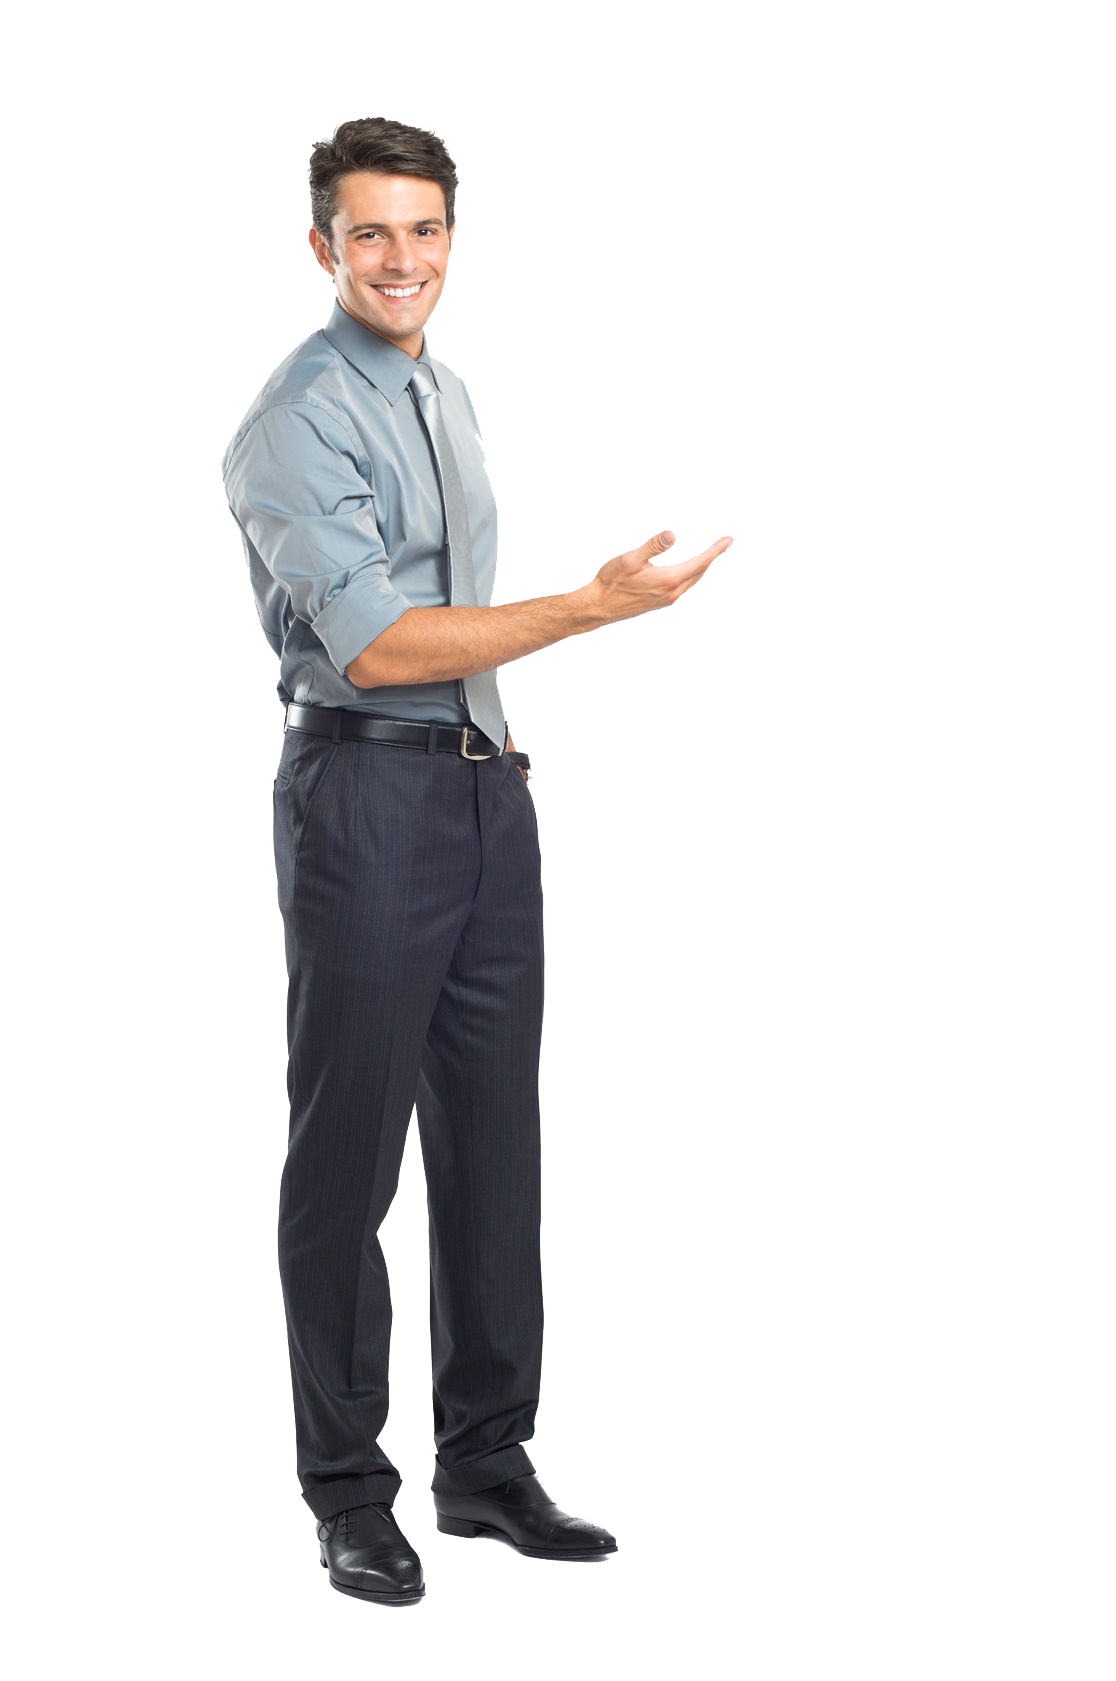 Man Transparent Background